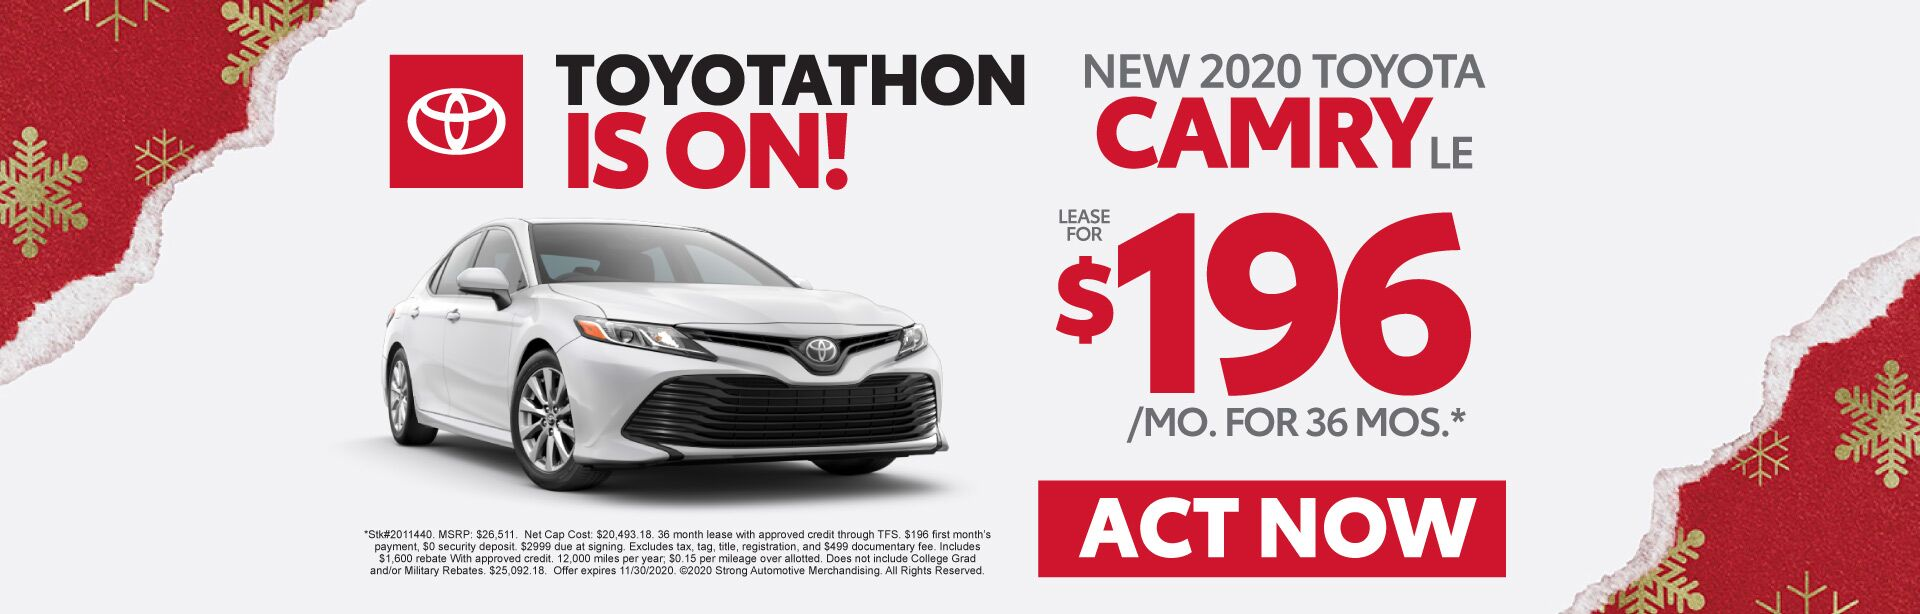 New 2020 Toyota Camry - Lease for $196 a month - Act Now